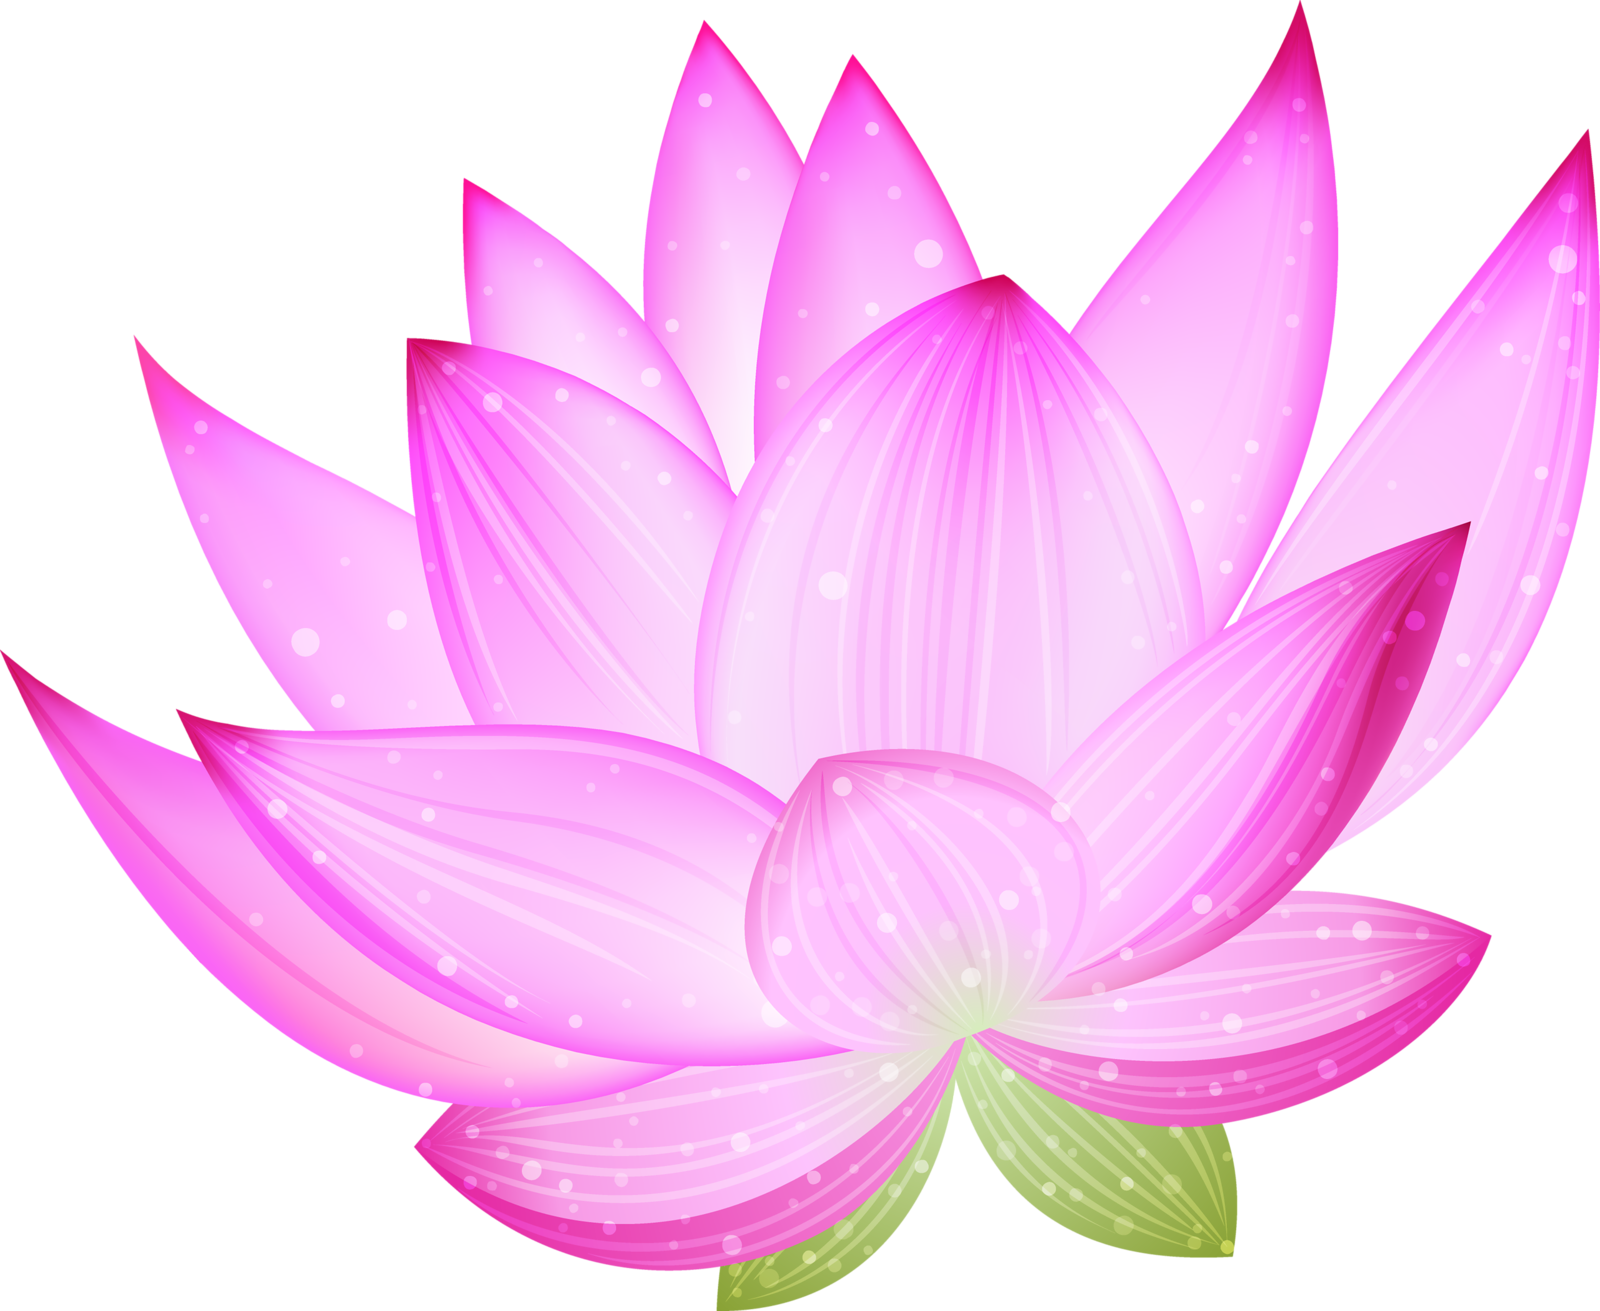 Pink lily flower transparent image the cliparts -